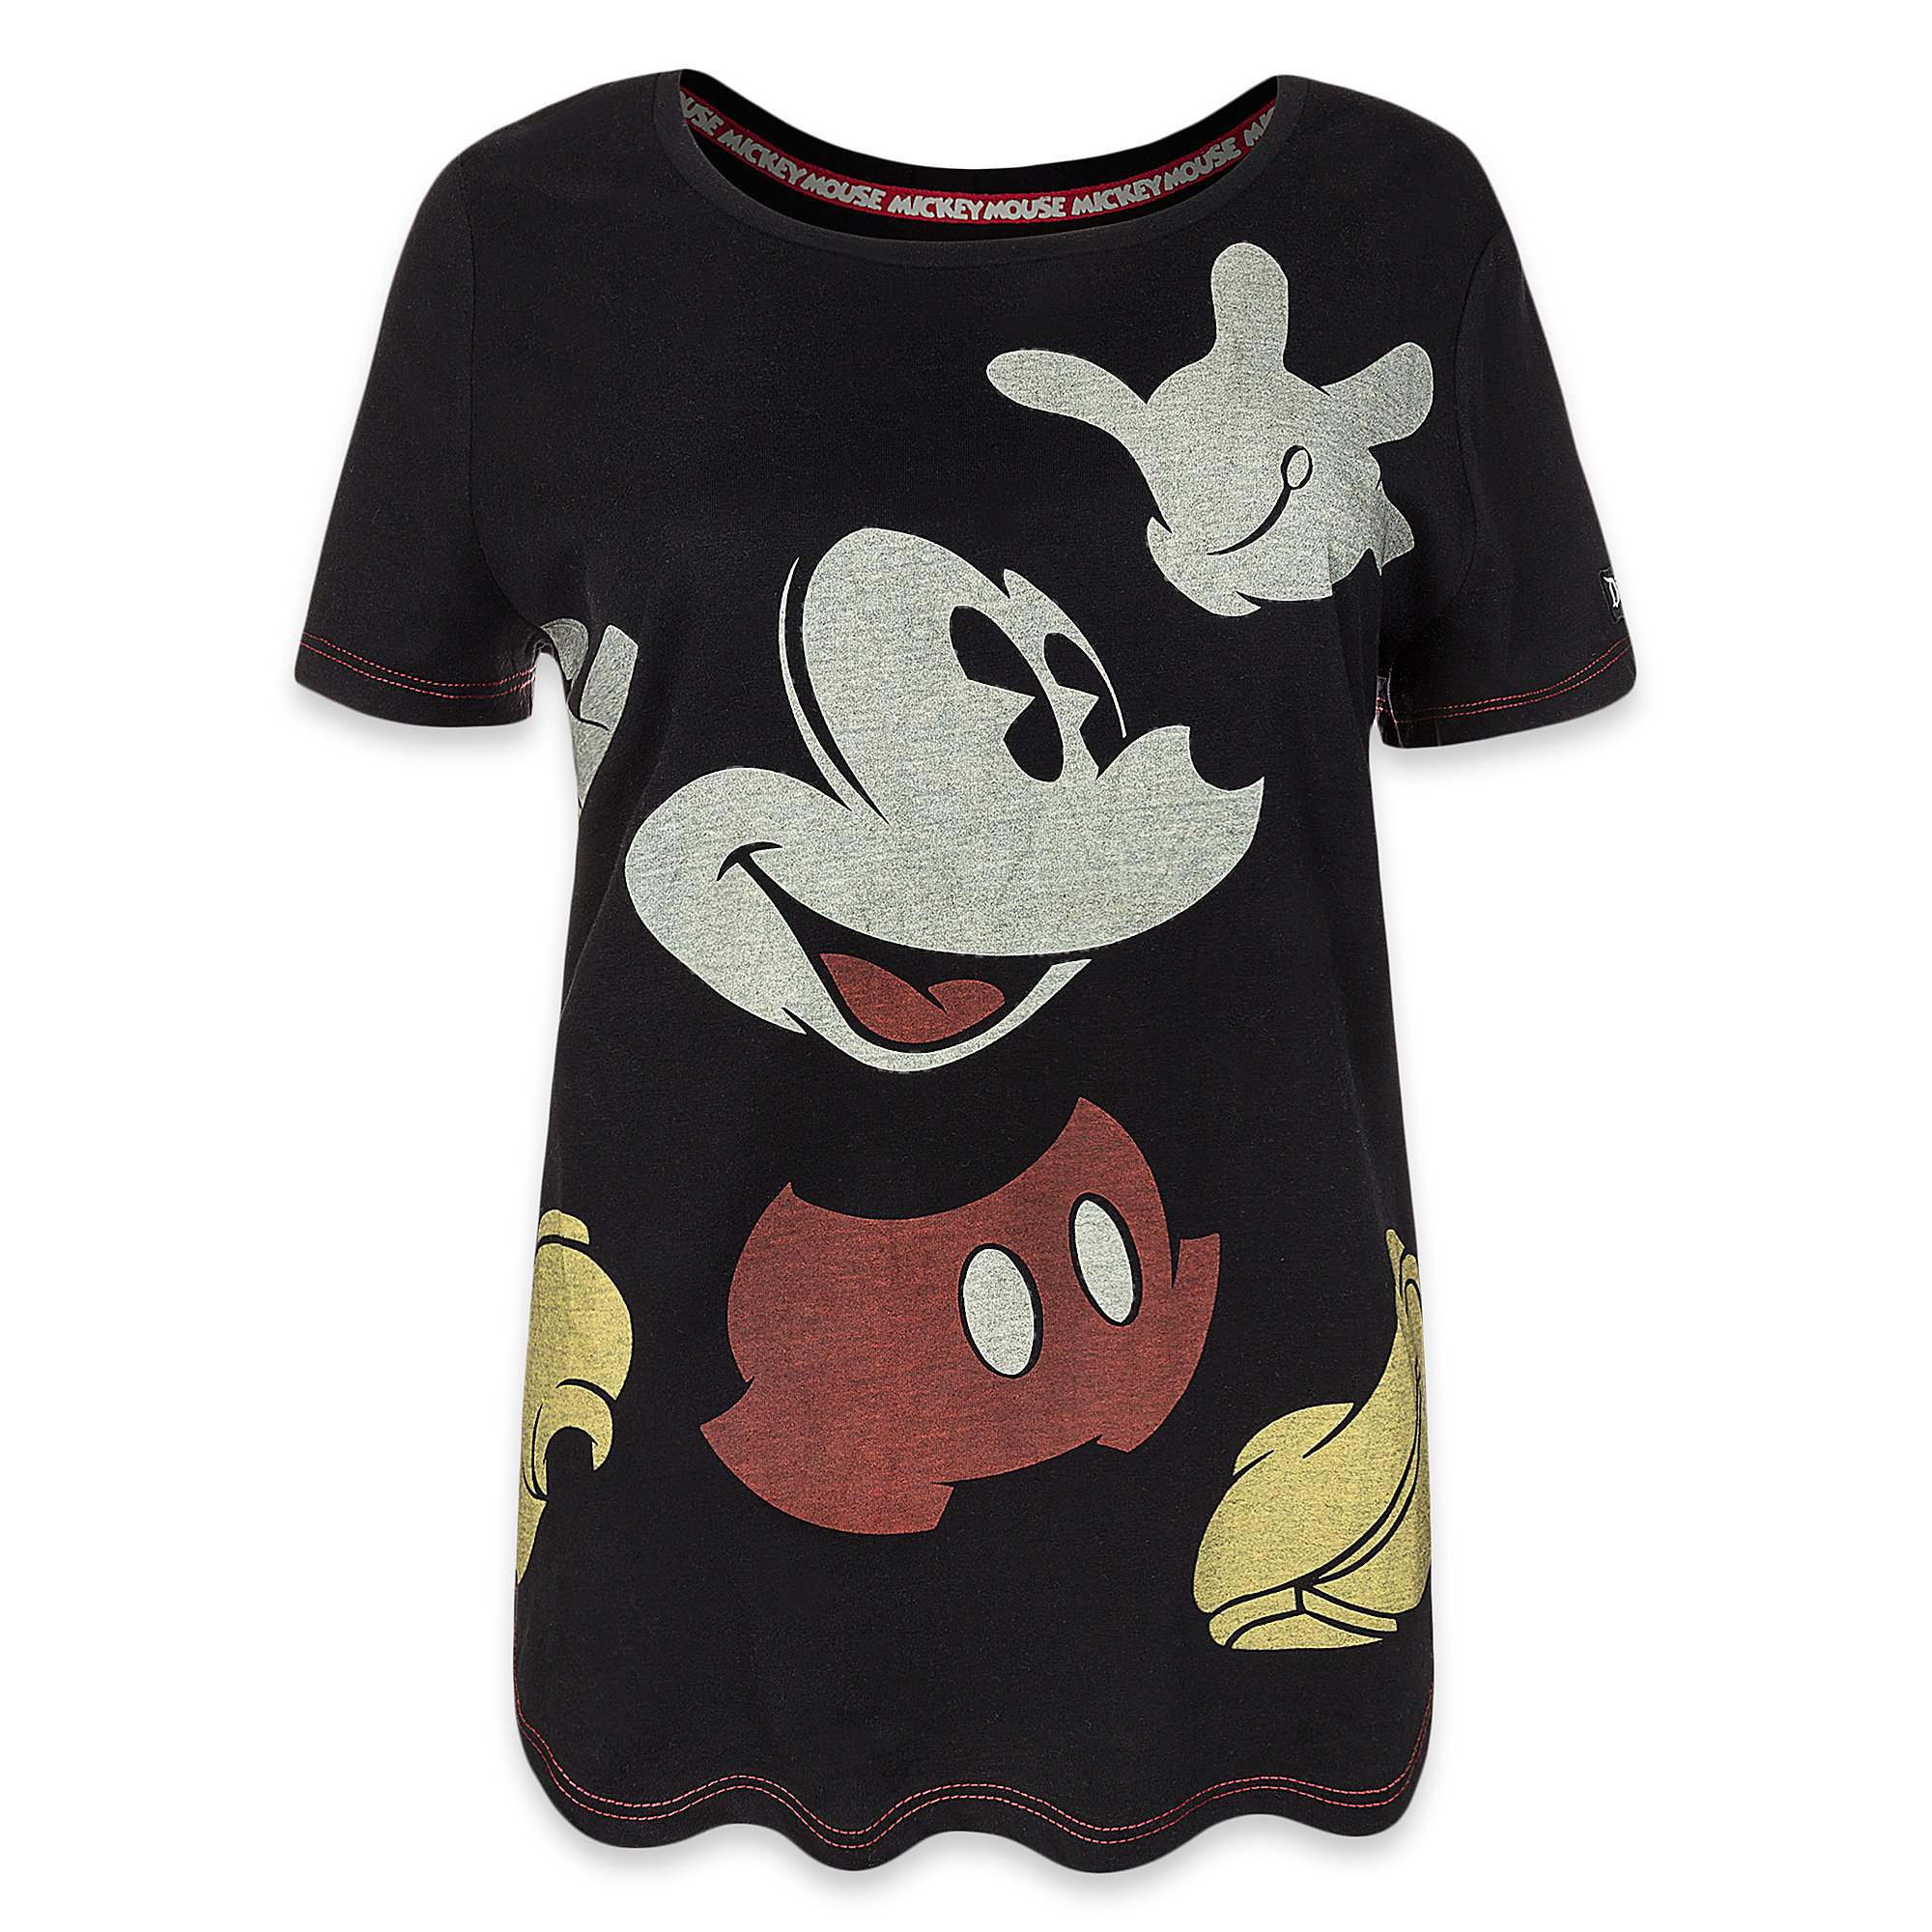 Mickey Mouse T-Shirt - Disneyland - Women